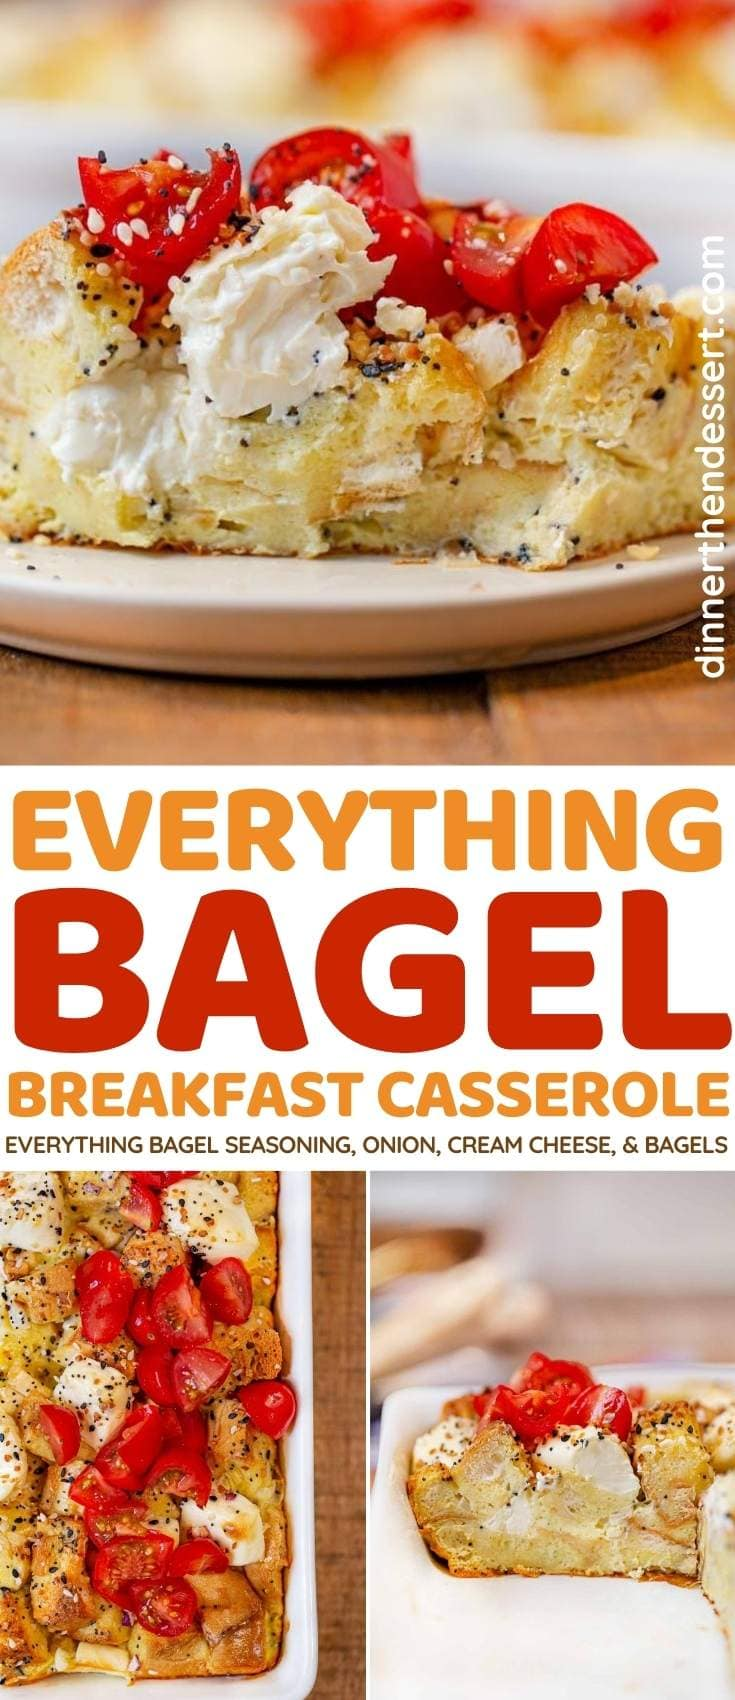 Everything Bagel Breakfast Bake collage